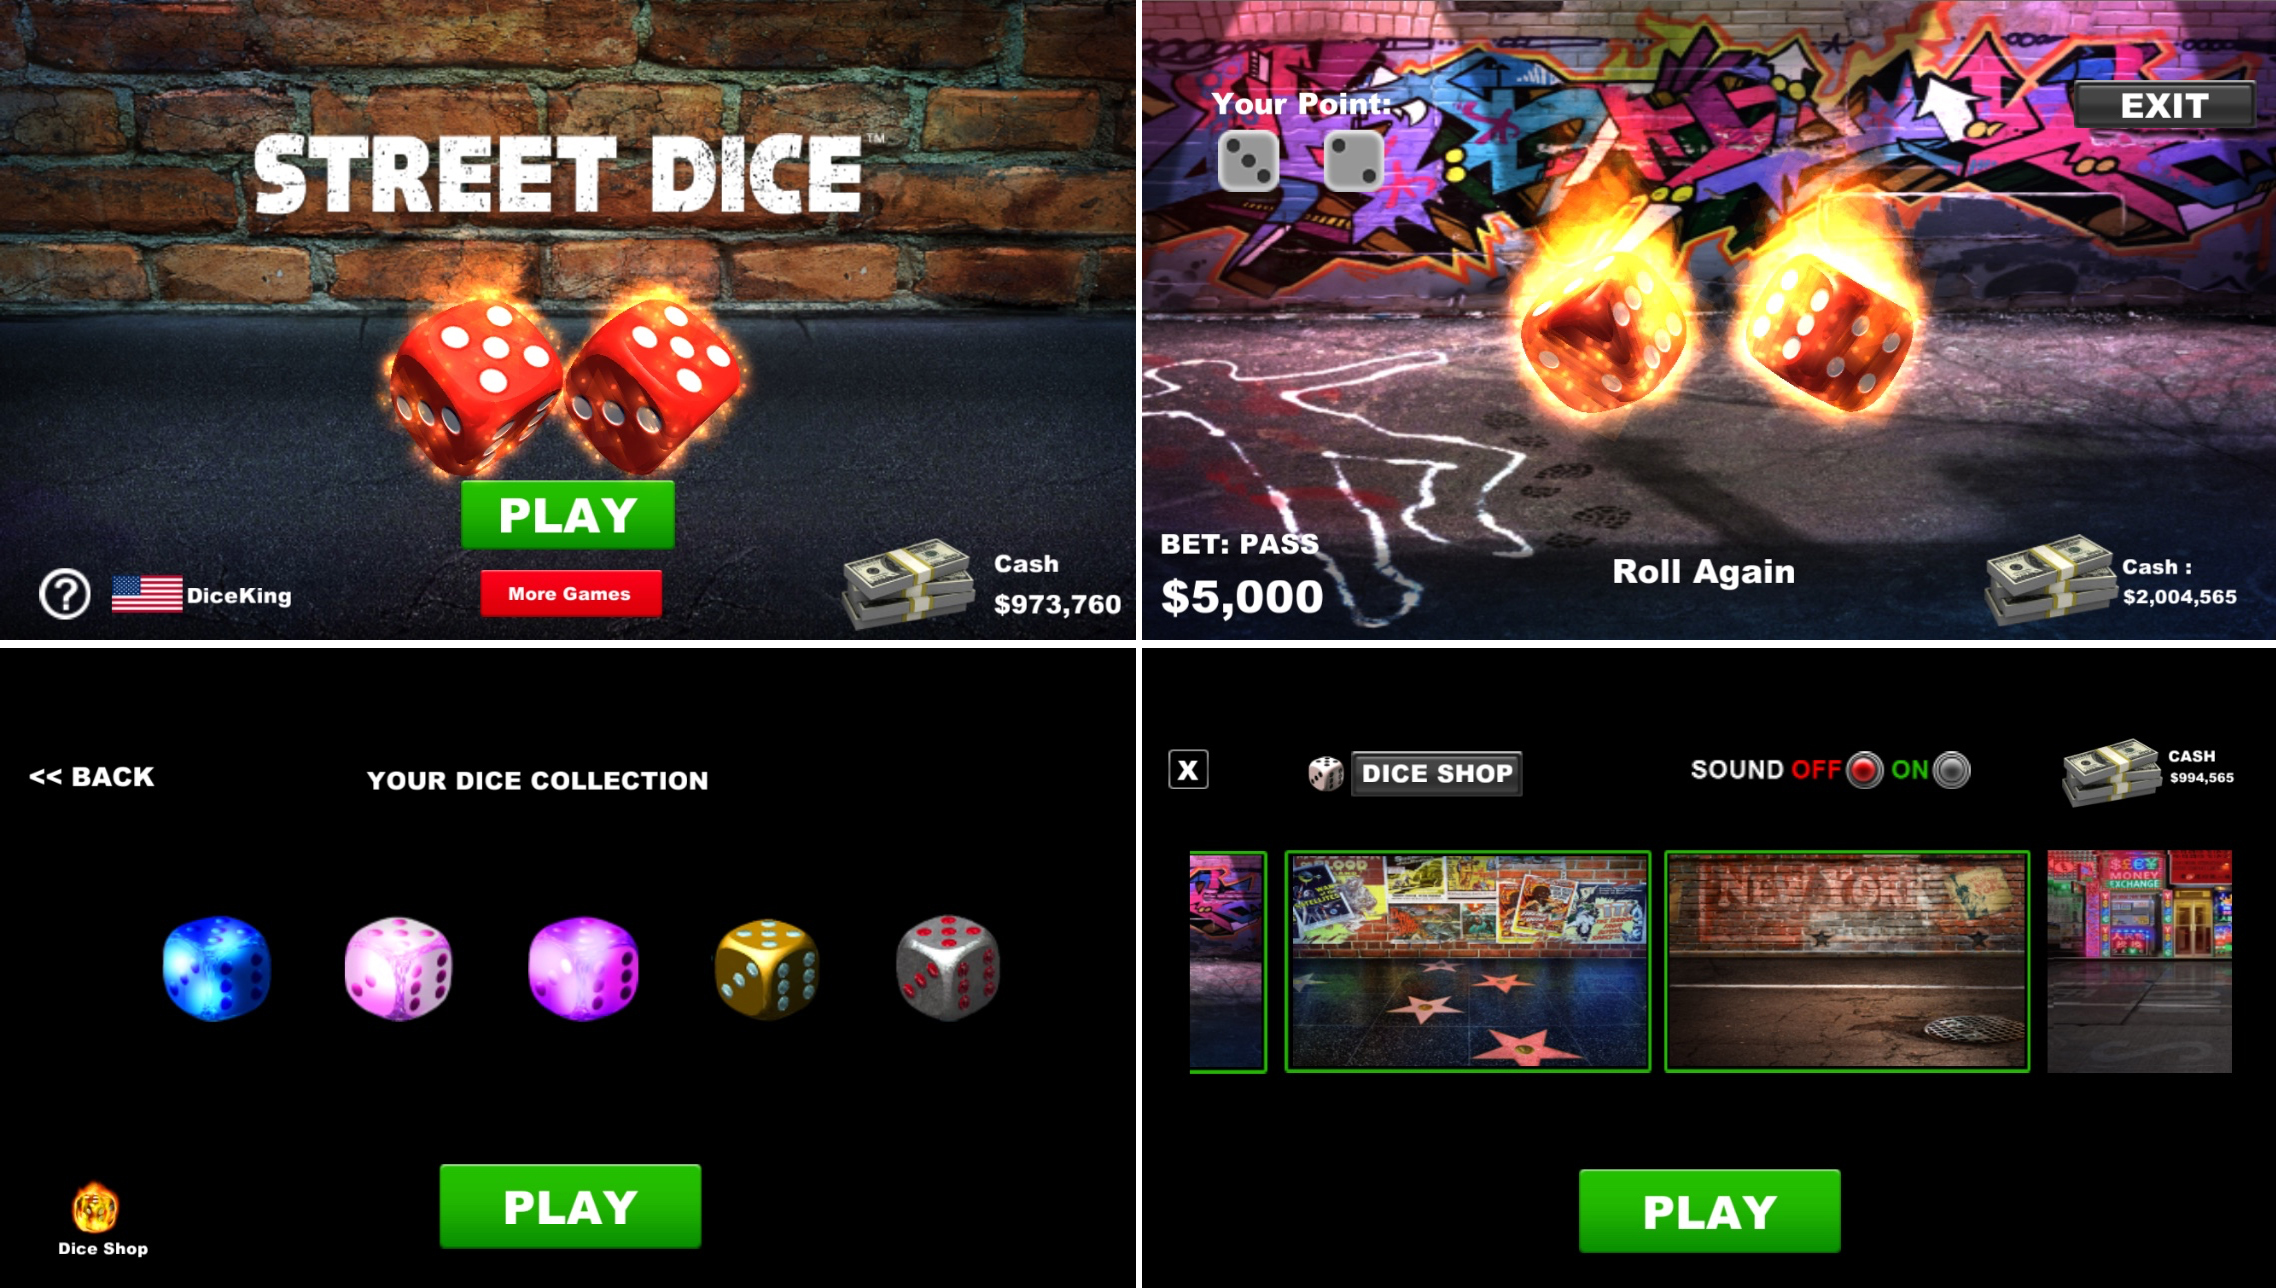 The Street Dice App is now available on the App and Play Store Image